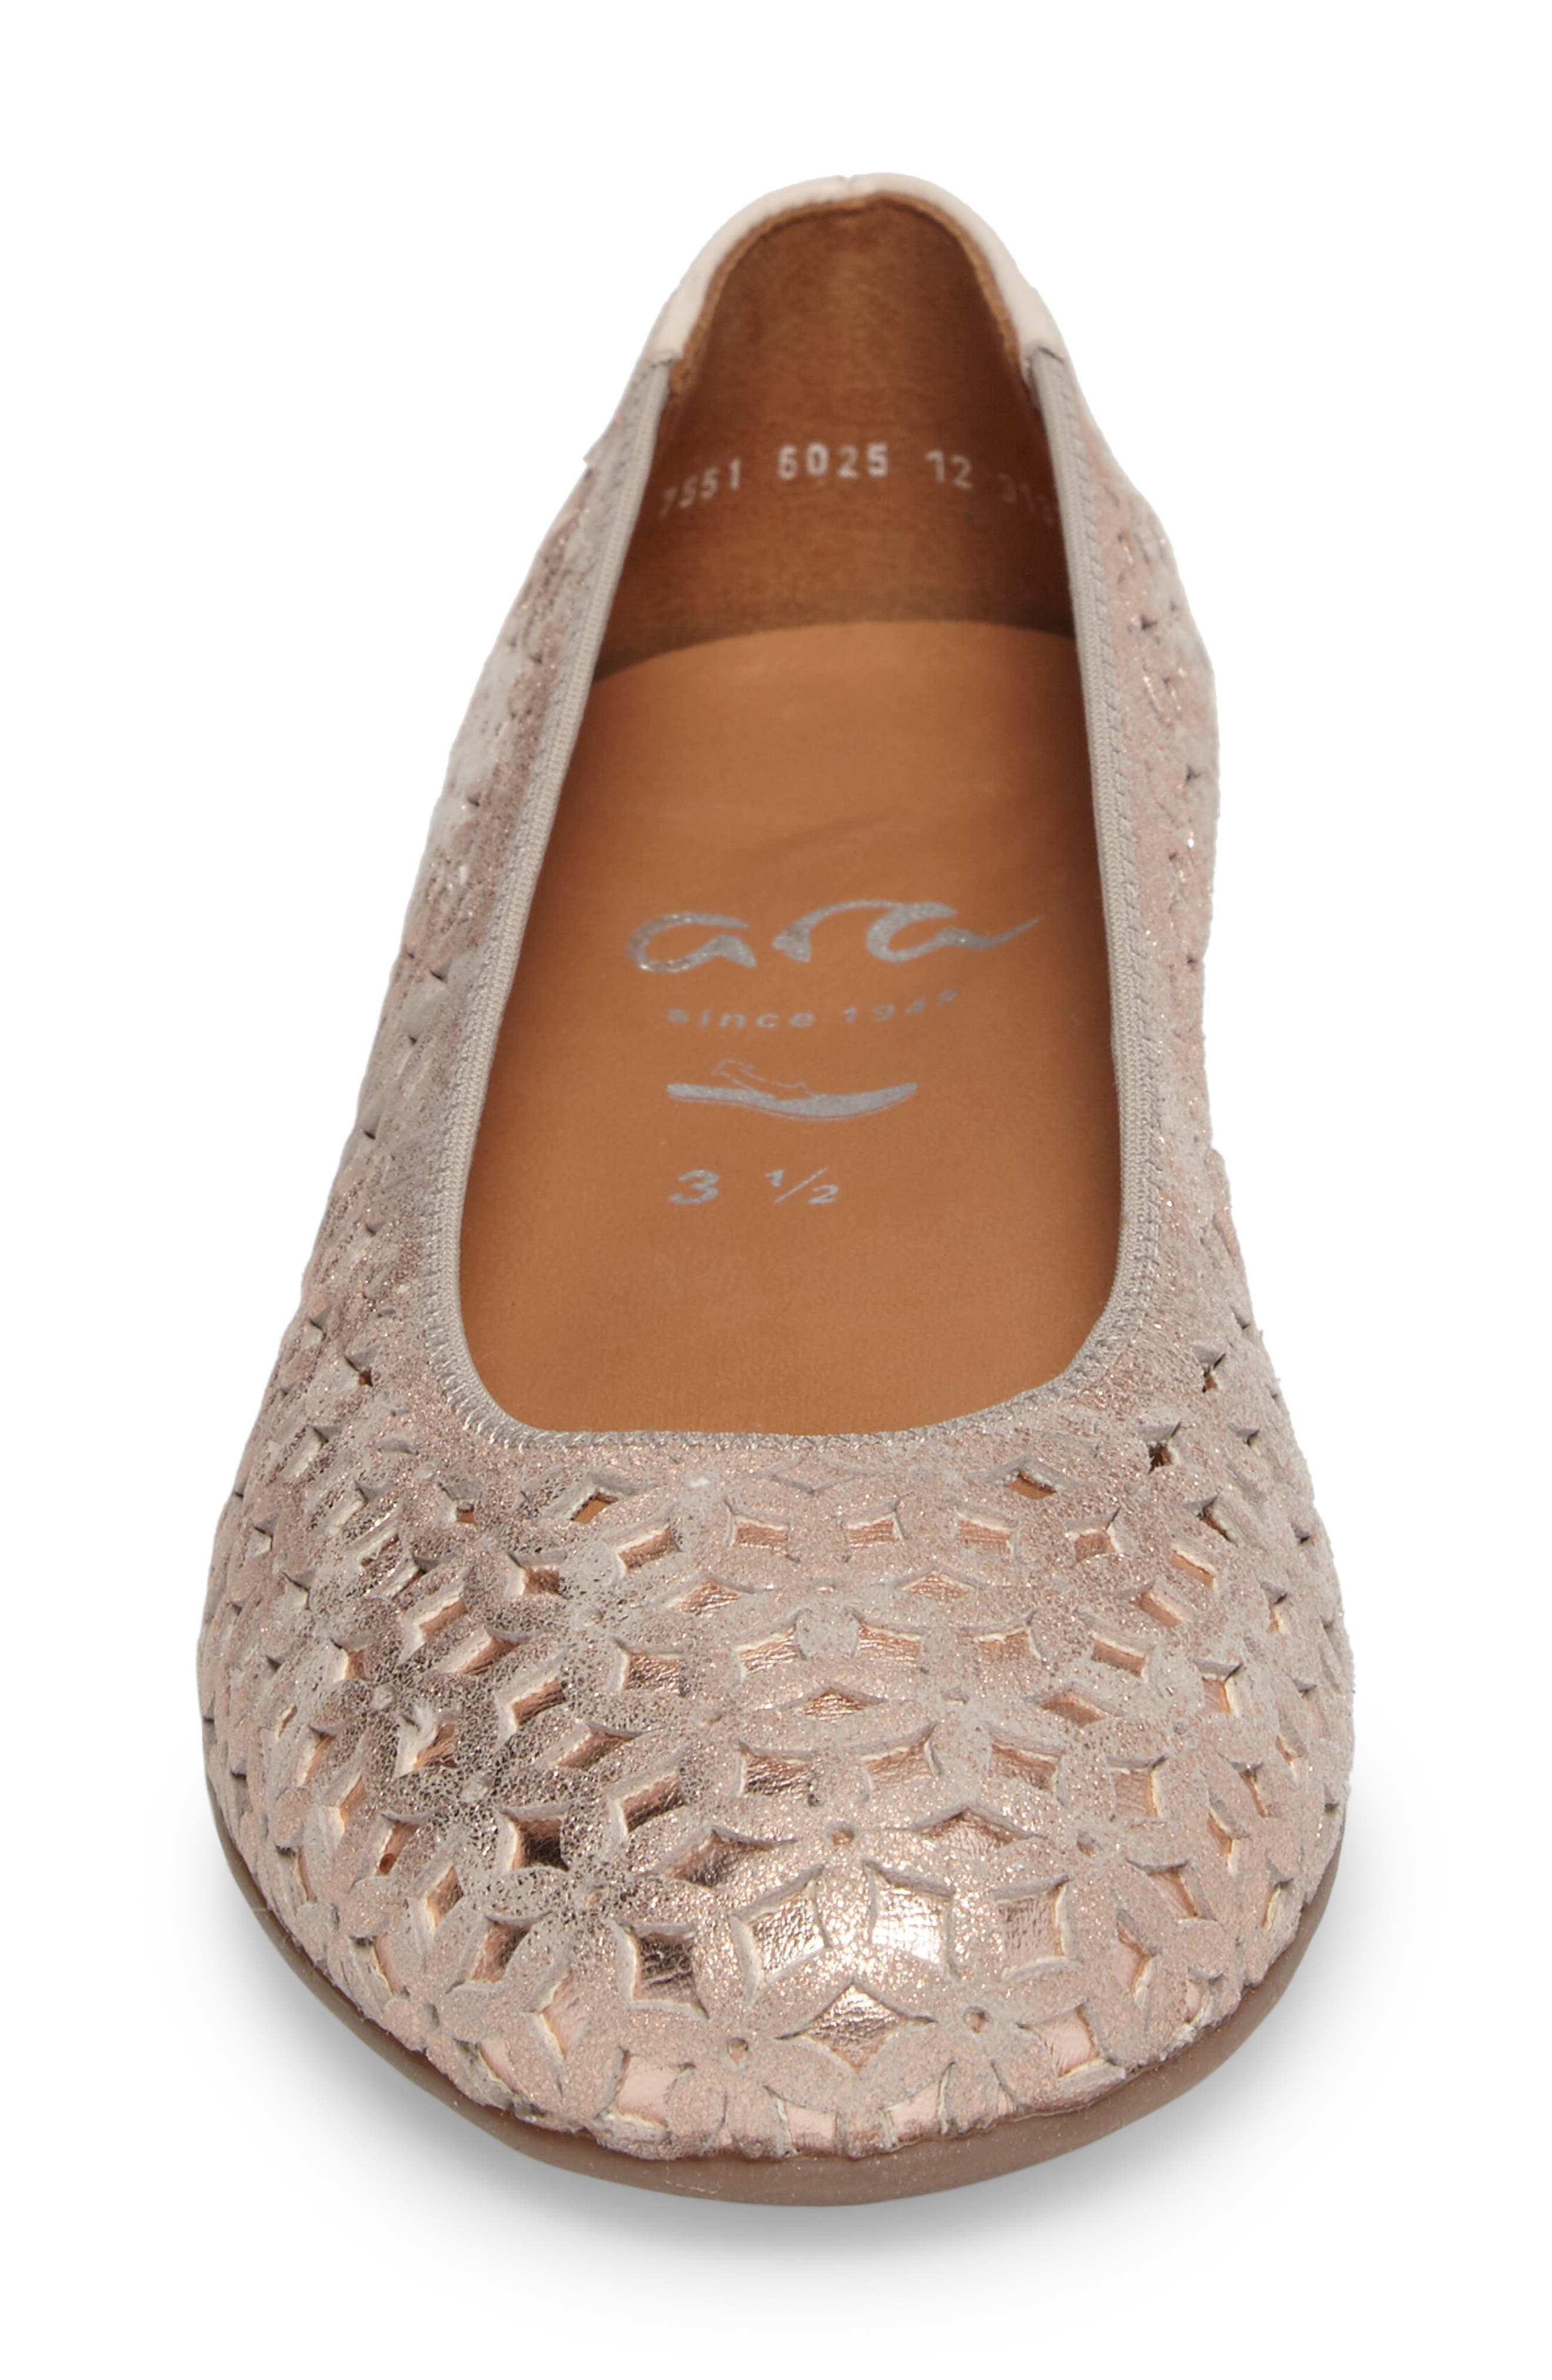 Stephanie Perforated Ballet Flat,                             Alternate thumbnail 4, color,                             Rose Gold Leather